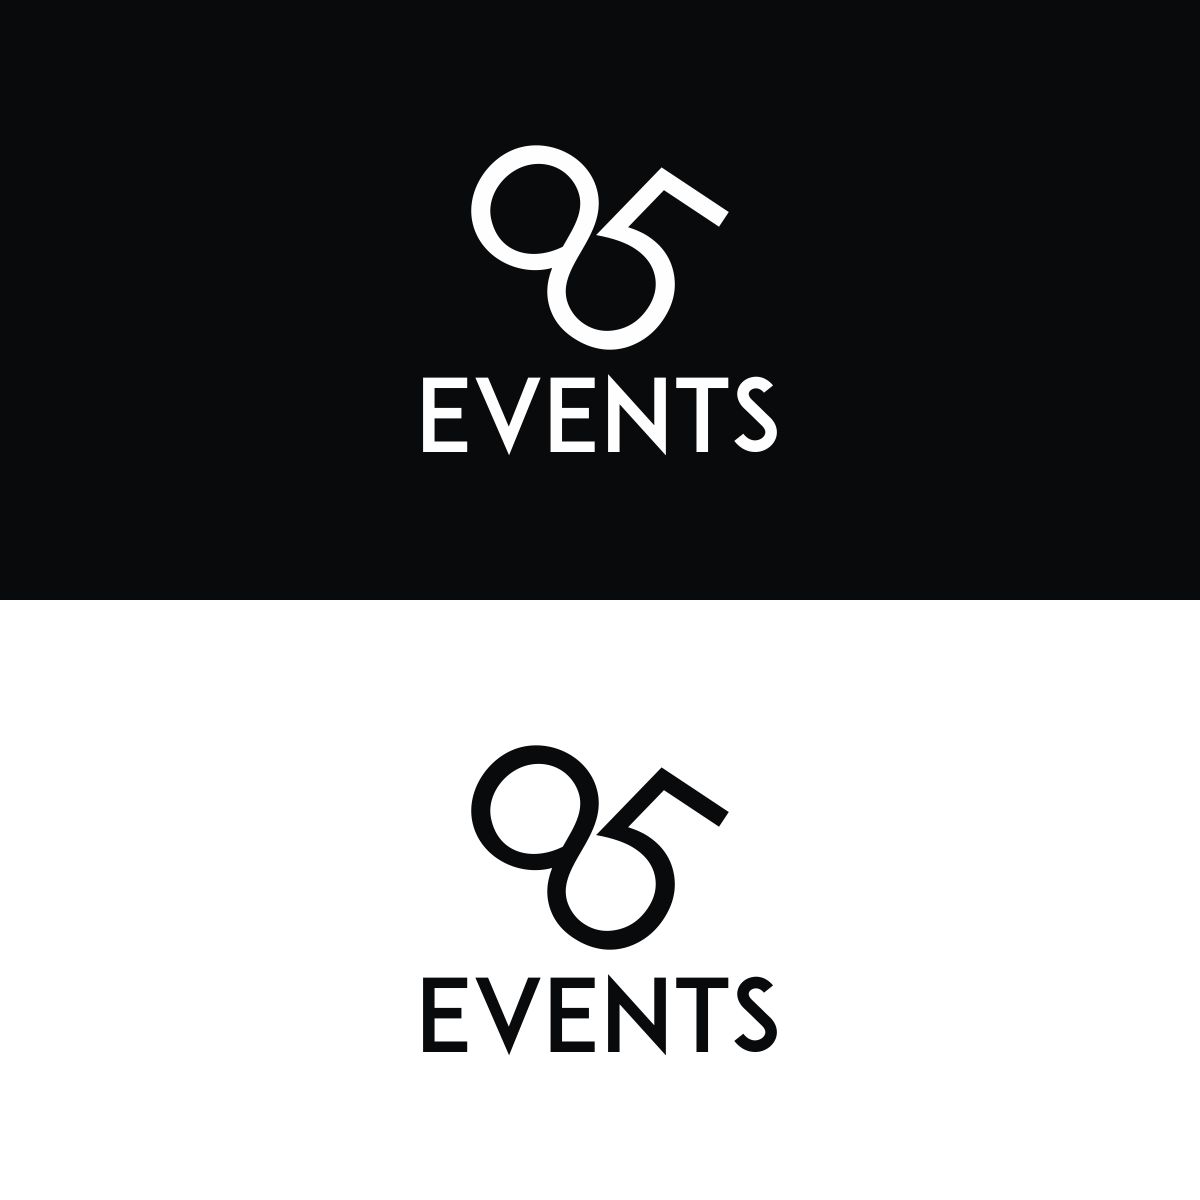 Logo Design for a Trendy Events Business by Kreative Fingers